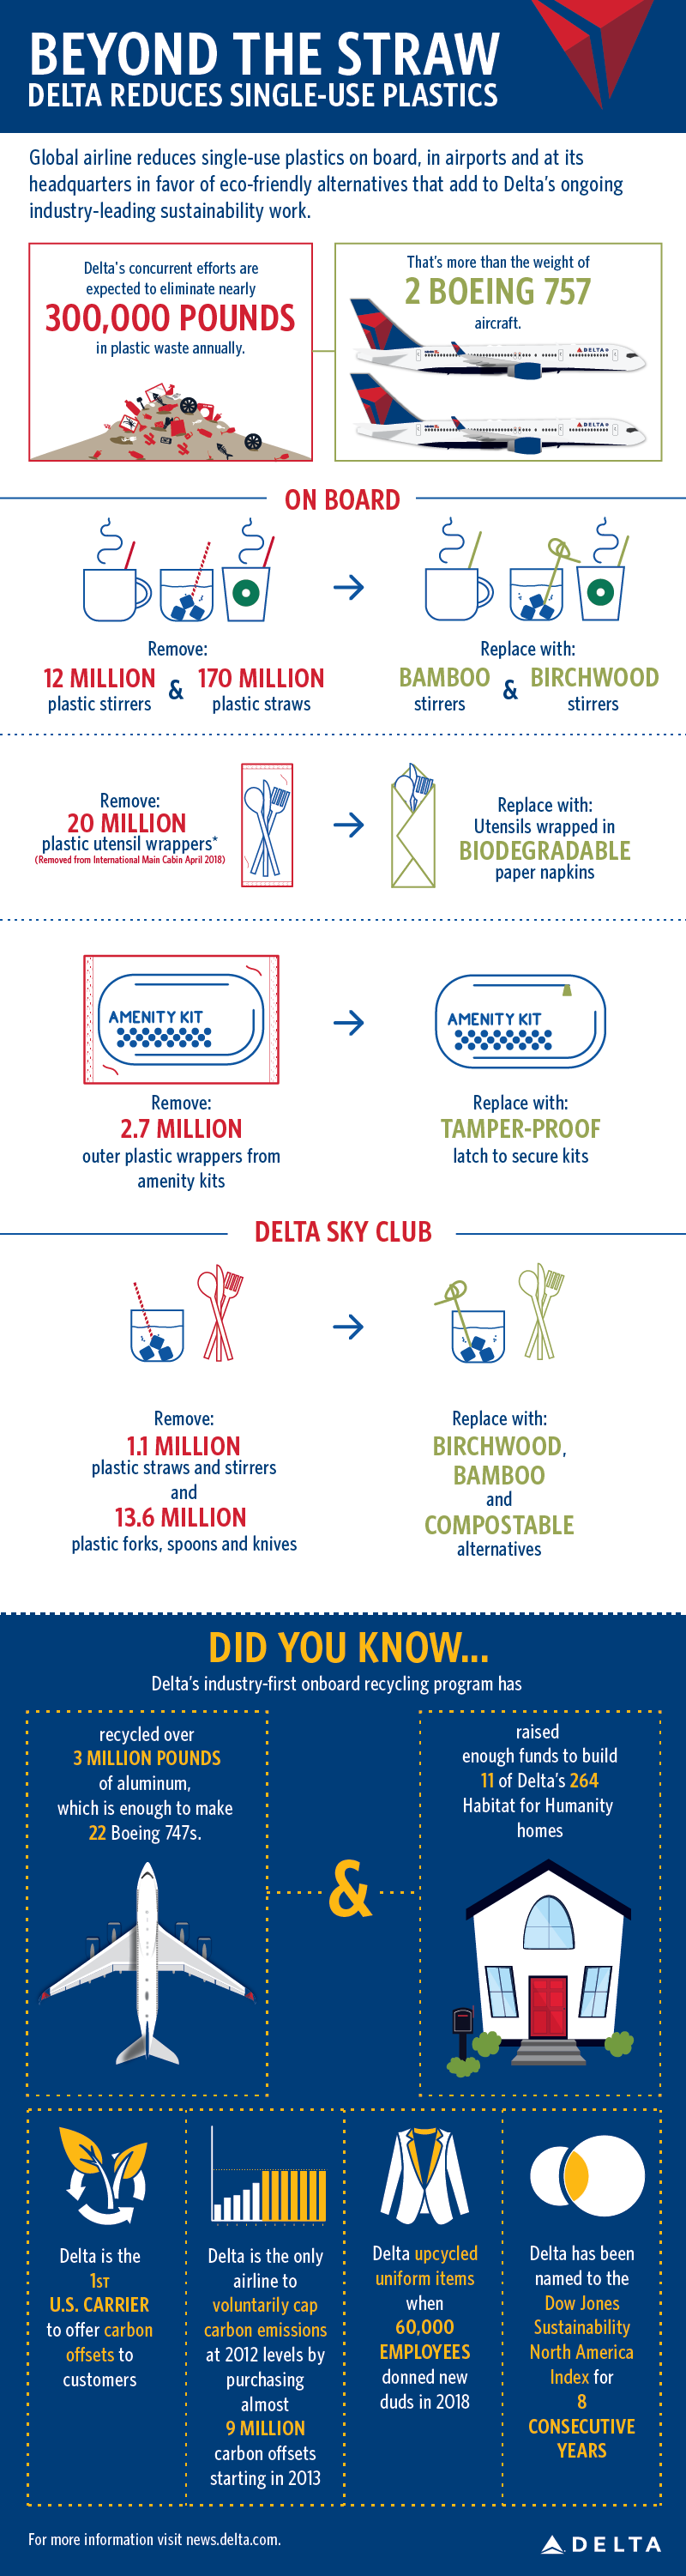 Beyond the straw infographic